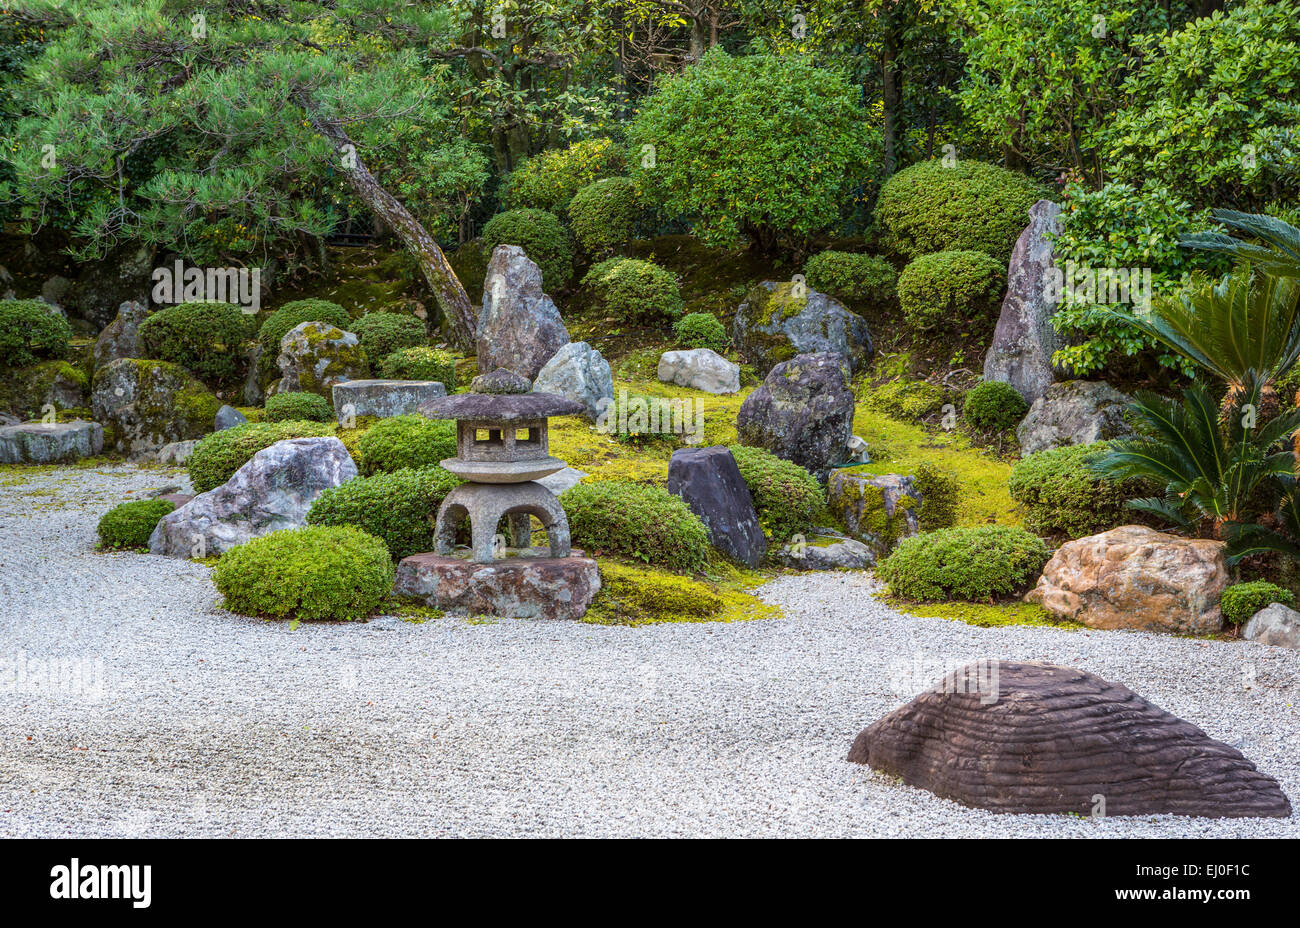 Chion In, Japan, Asia, Kansai, Kyoto, Japanese, Landscape, Temple,  Architecture, Colourful, Fall, Garden, Green, Lantern, Nature,